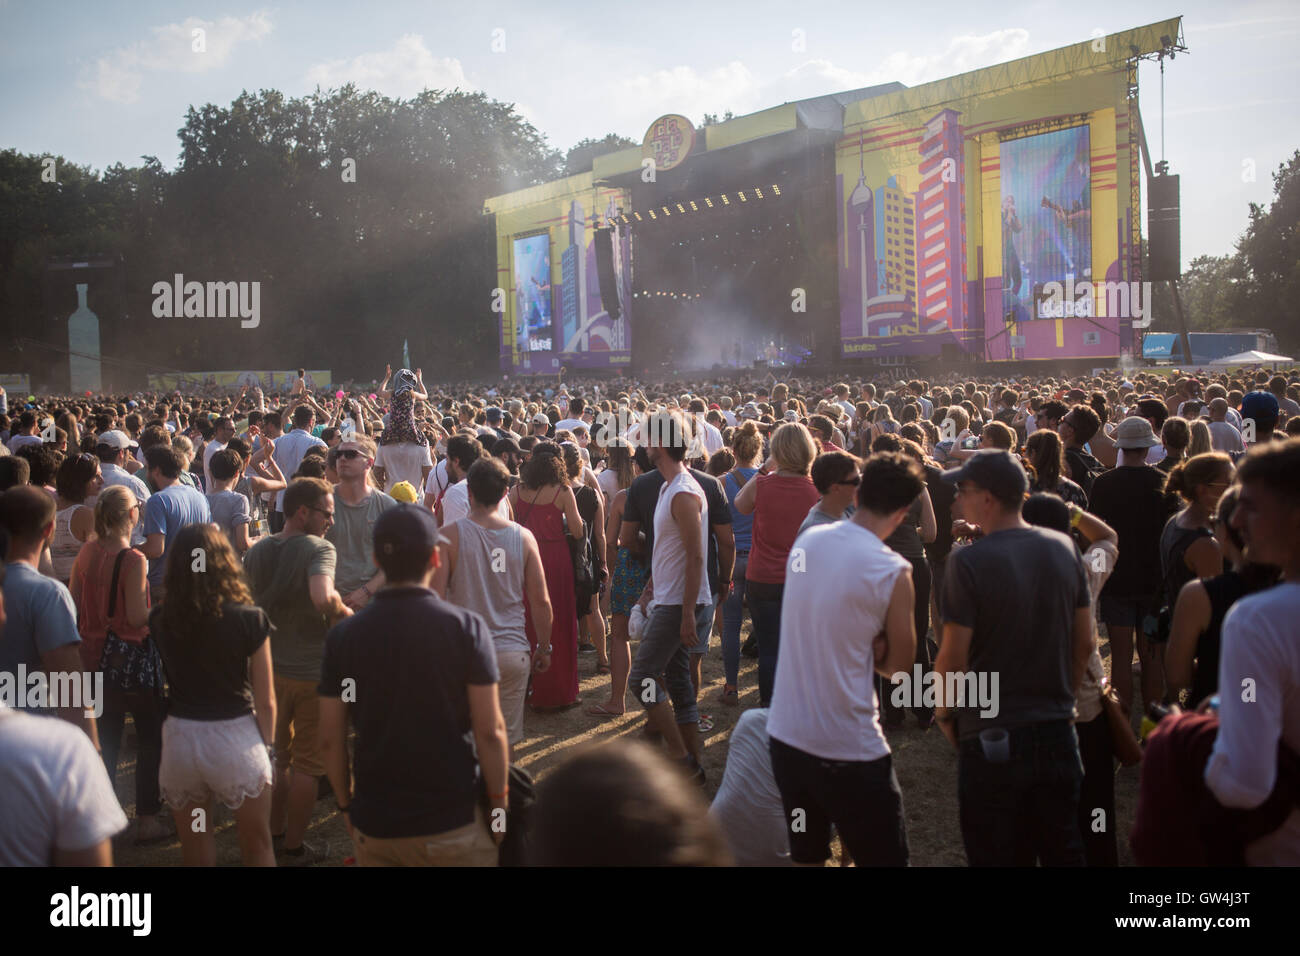 Visitors at the mainstage of the Lollapalooza festival in Berlin, Germany, 11 September 2016. PHOTO: SOPHIA KEMBOWSKI/dpa - Stock Image